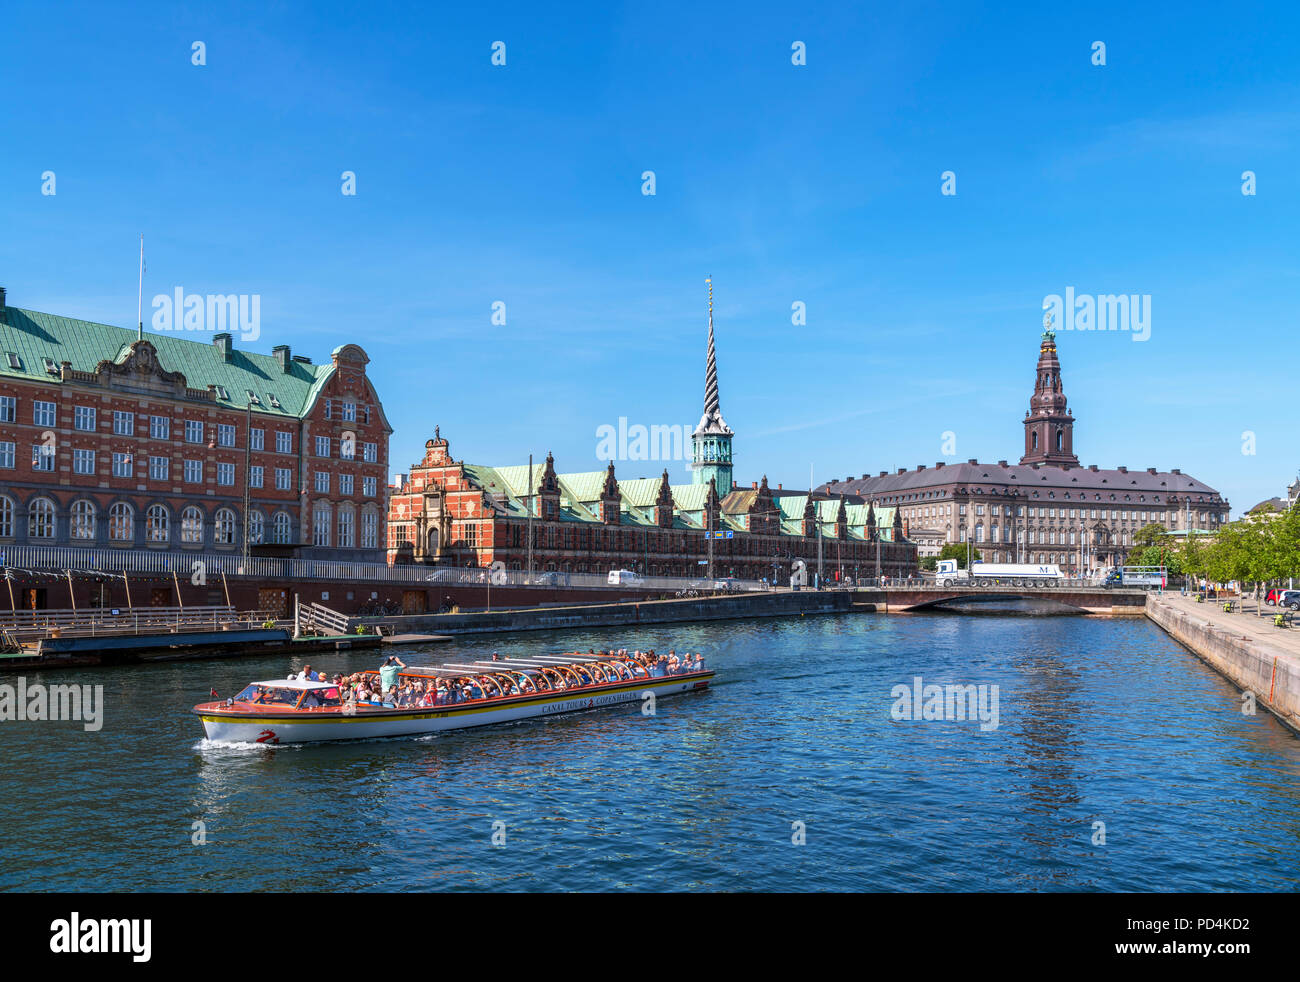 River cruise on Slotsholmens canal looking towards the Børsen (Stock Exchange) and Christiansborg Slot (Christiansborg Palace), Copenhagen, Denmark - Stock Image